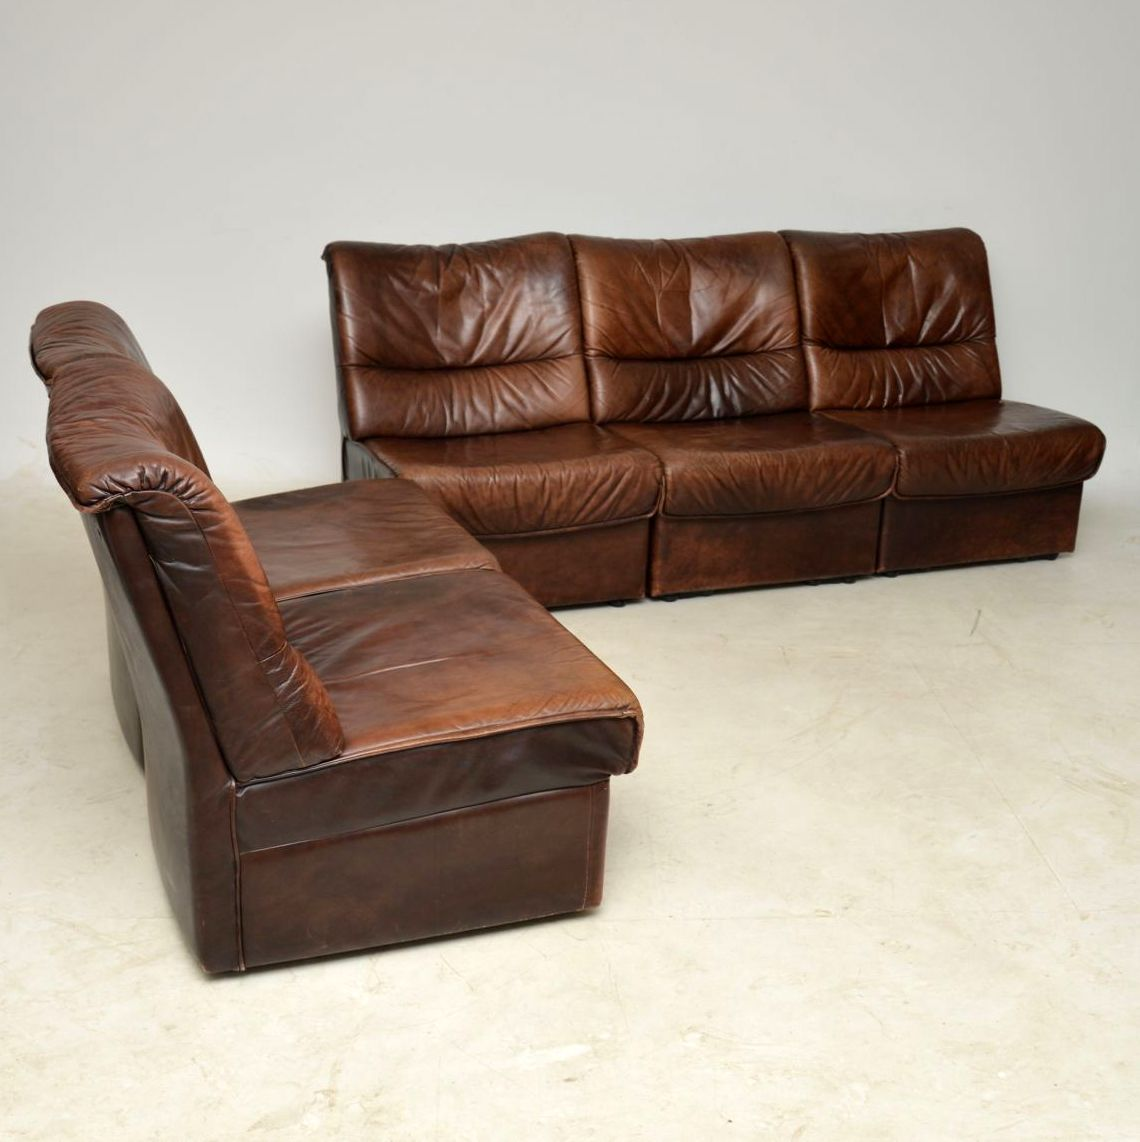 1960 S Danish Vintage Leather Modular Sofa Retrospective